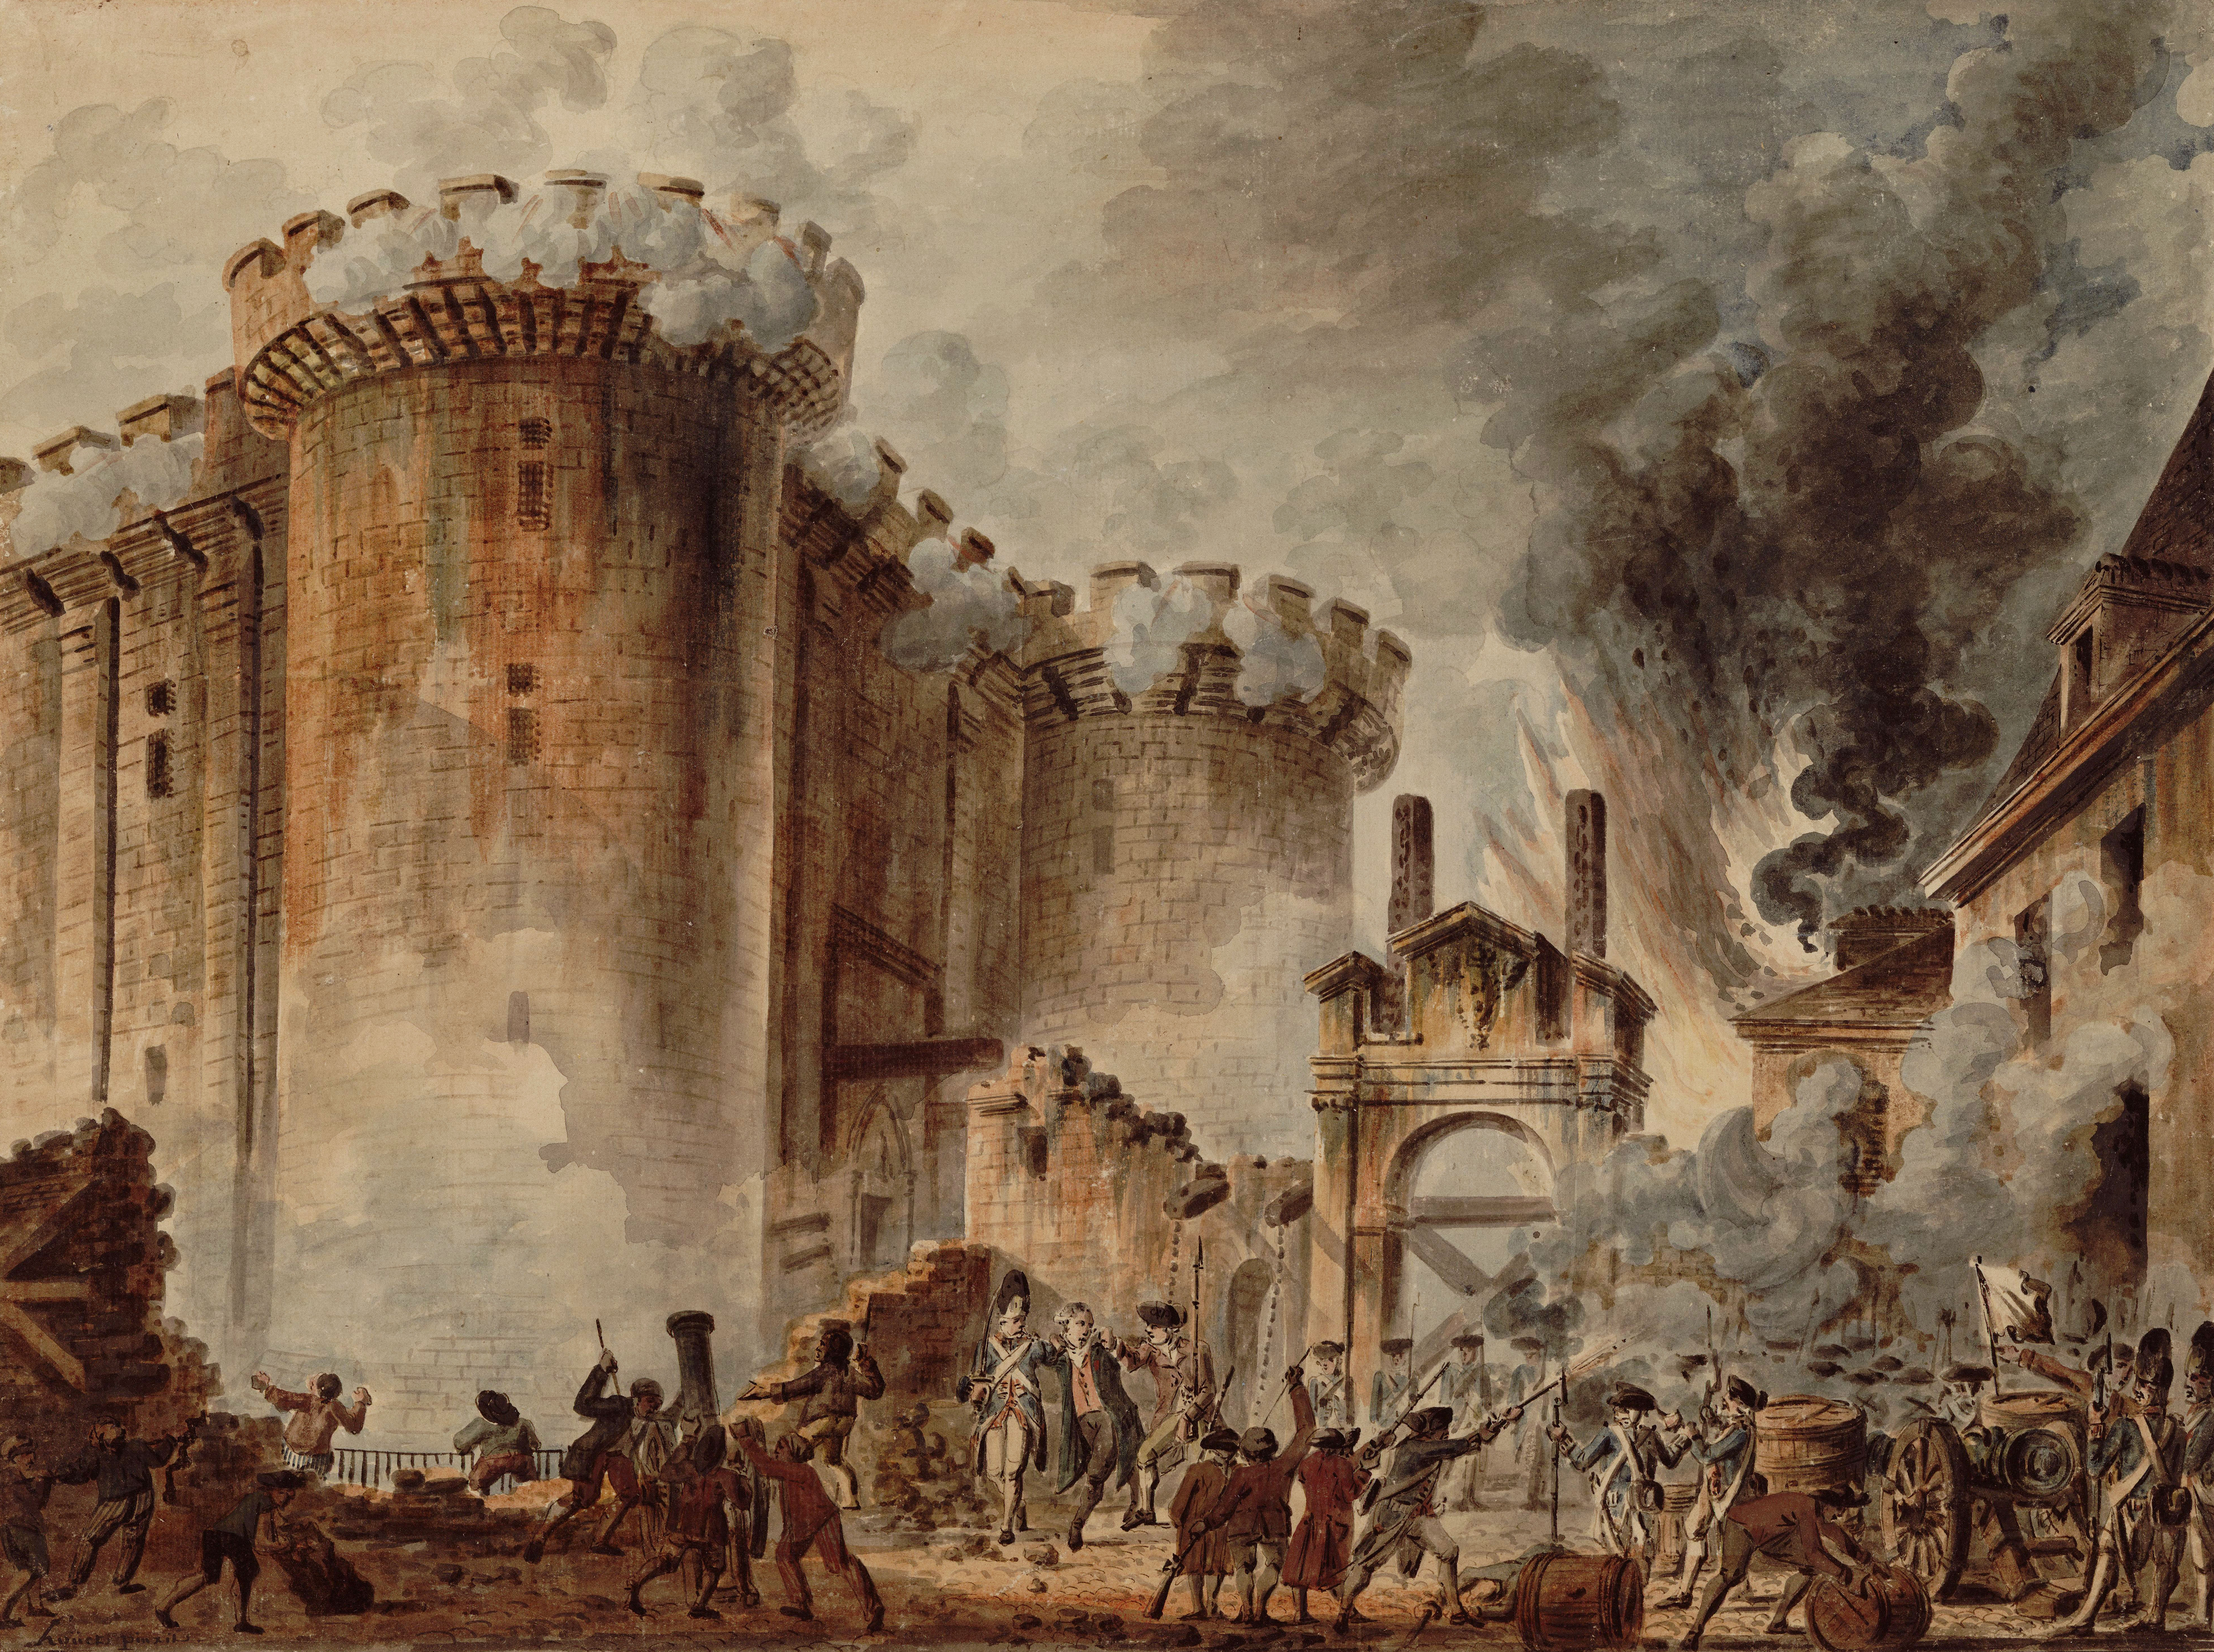 [storming of the Bastille]